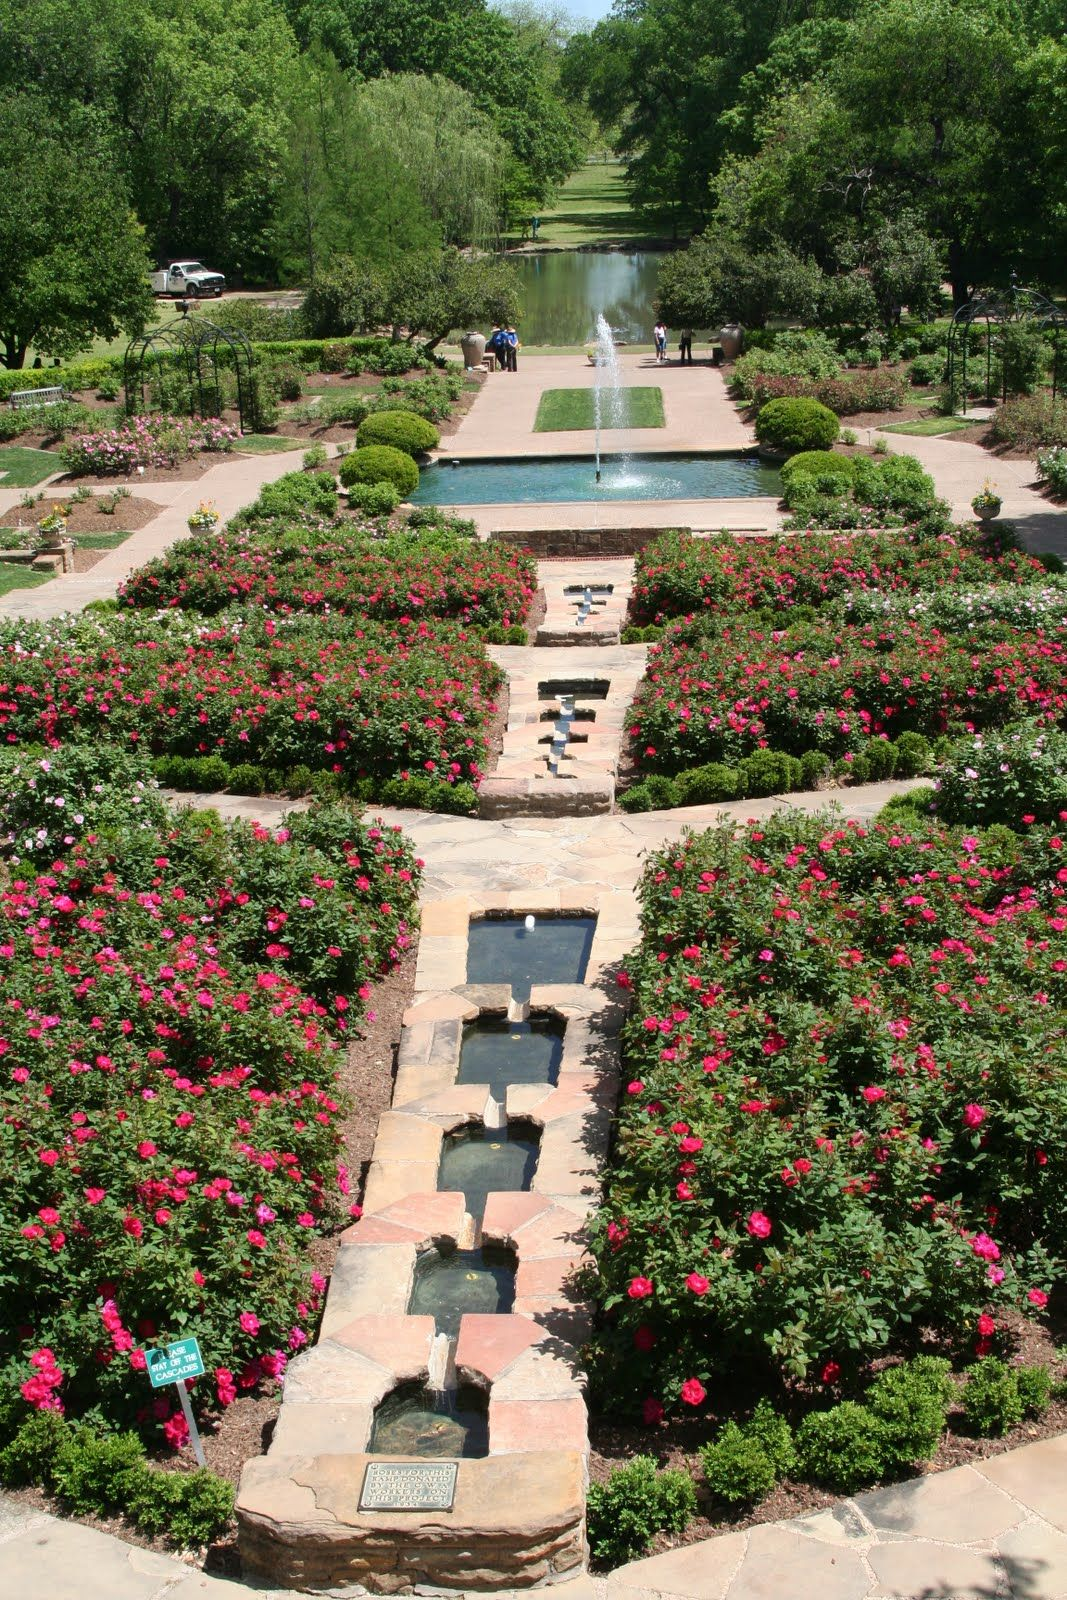 Lower Rose Garden rose garden inspired by Villa Lante